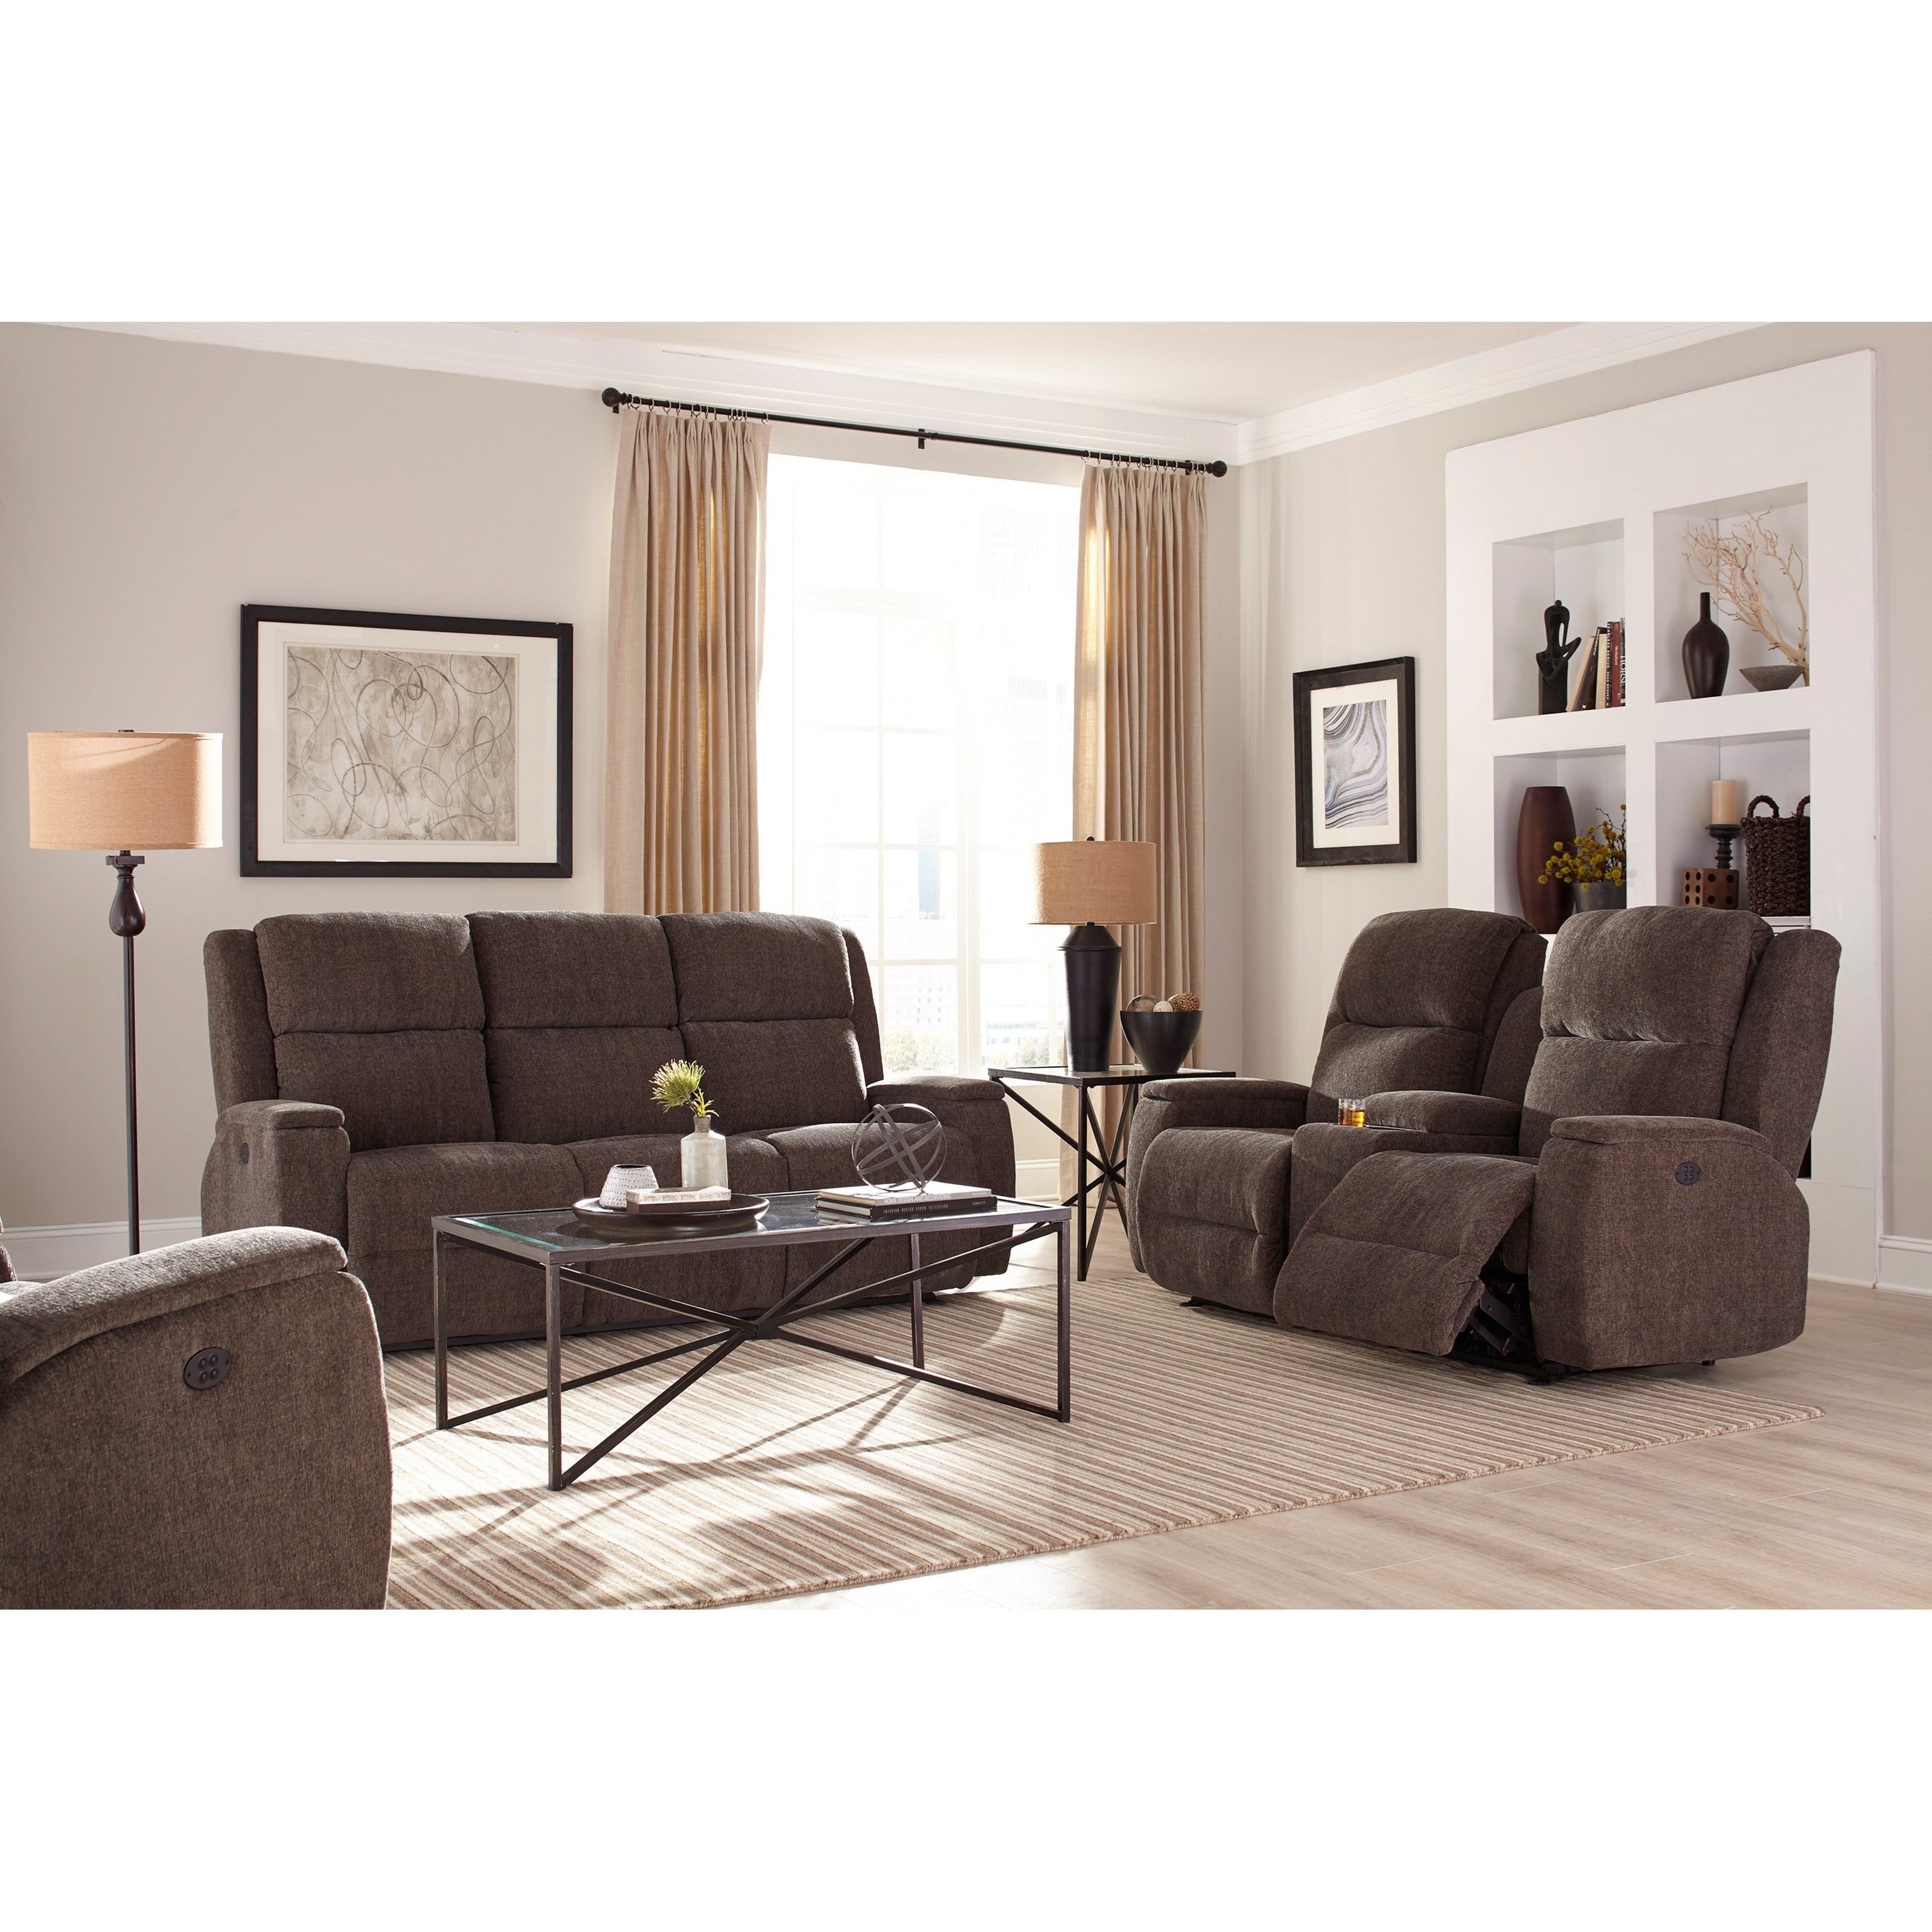 Best home furnishings colton s740rz4 power space saver for Best furnishings